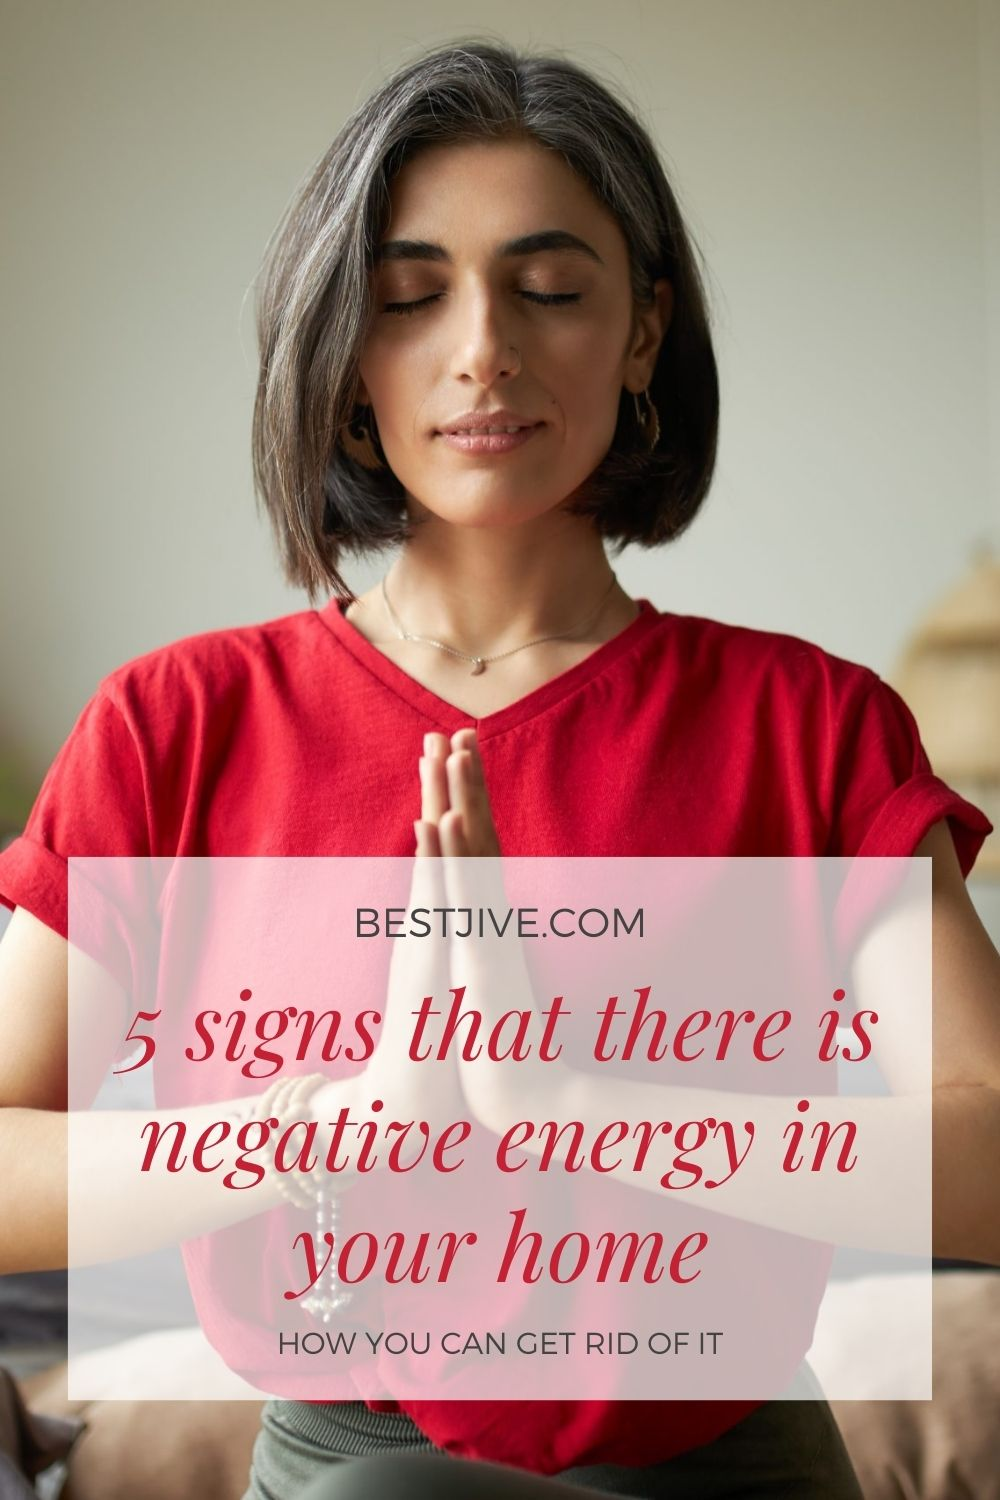 5 signs that there is negative energy in your home and how you can get rid of it